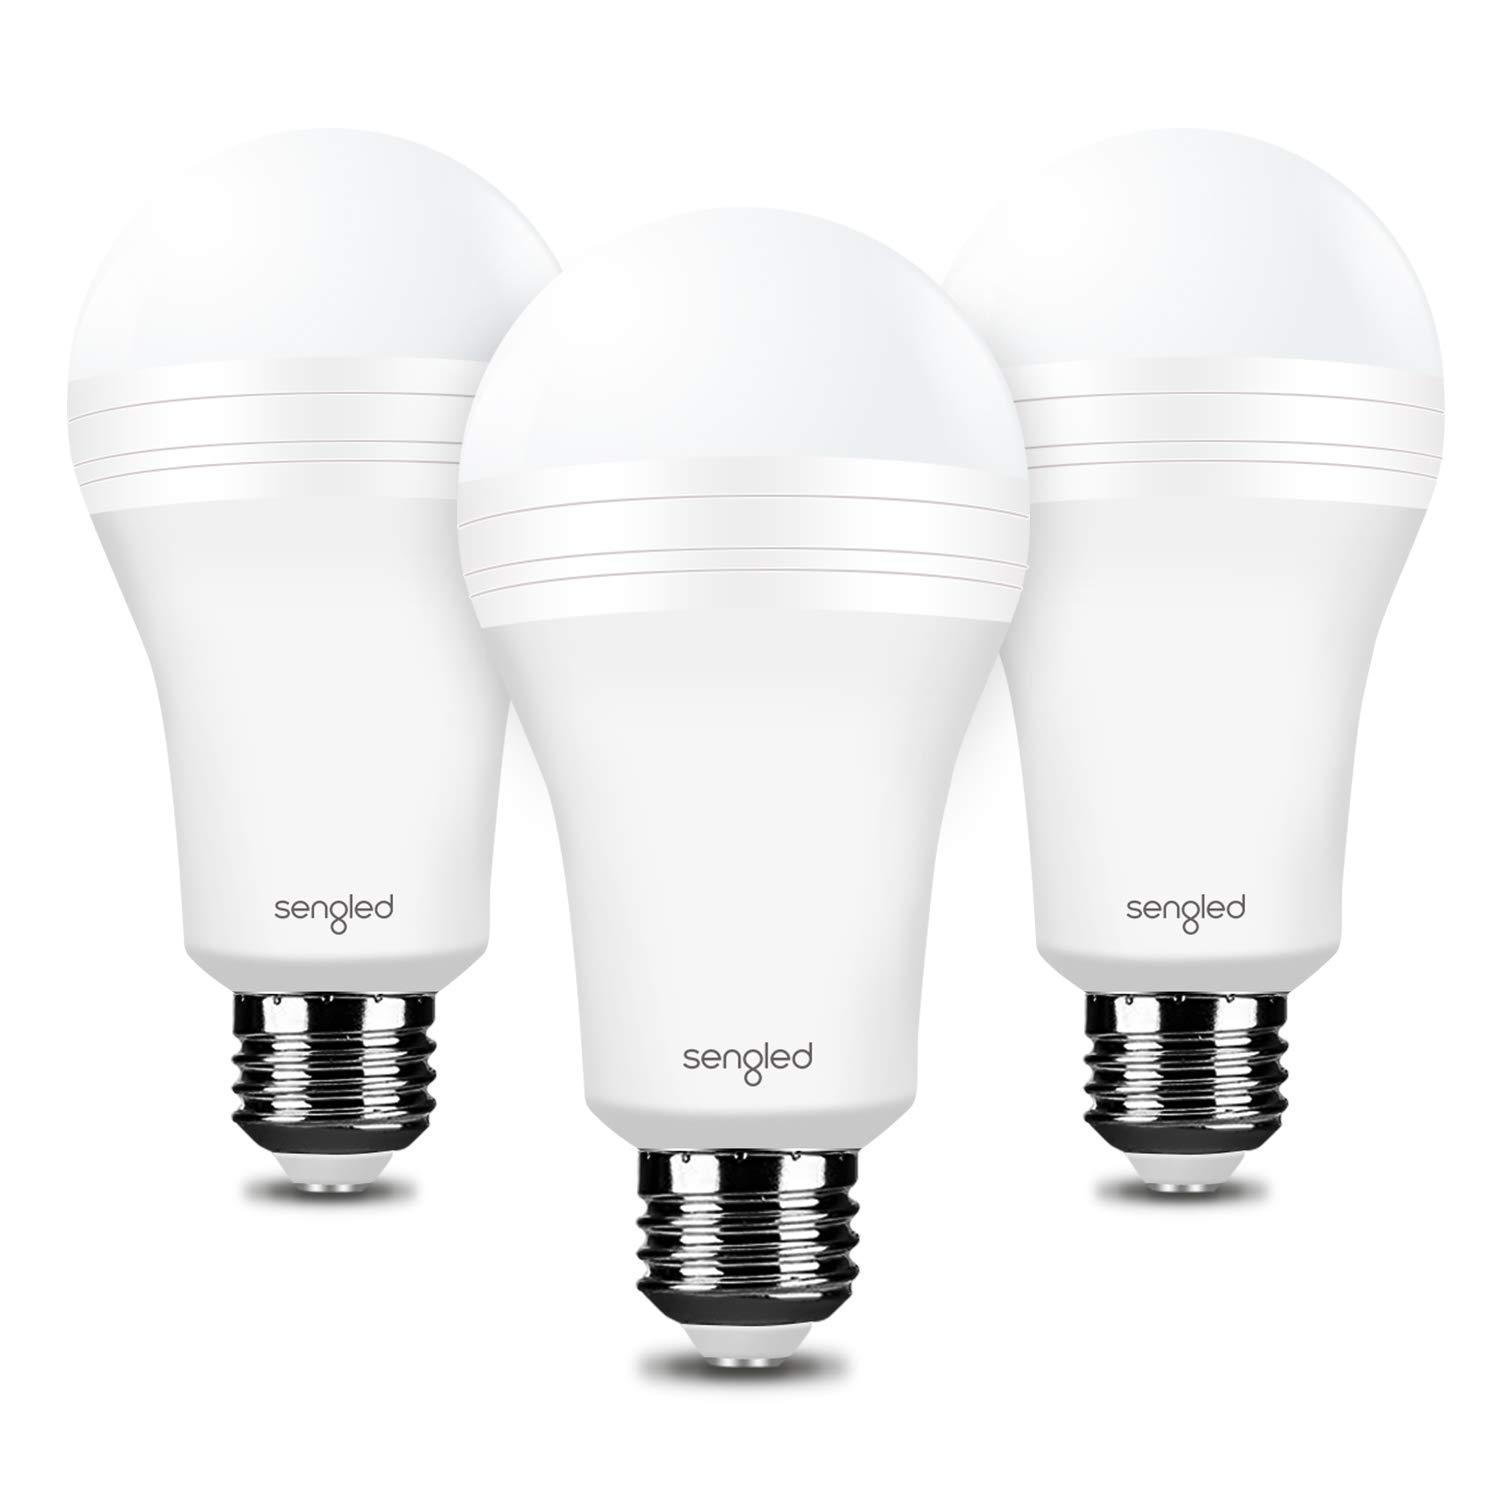 Sengled Everbright Emergency Light Bulb for Power Outage with Built-in Rechargeable Battery, Lasts 3.5 Hours Flashlight A19 40W Equivalent LED, Works Like Ordinary Bulbs (3000K Warm White, 3 Pack)